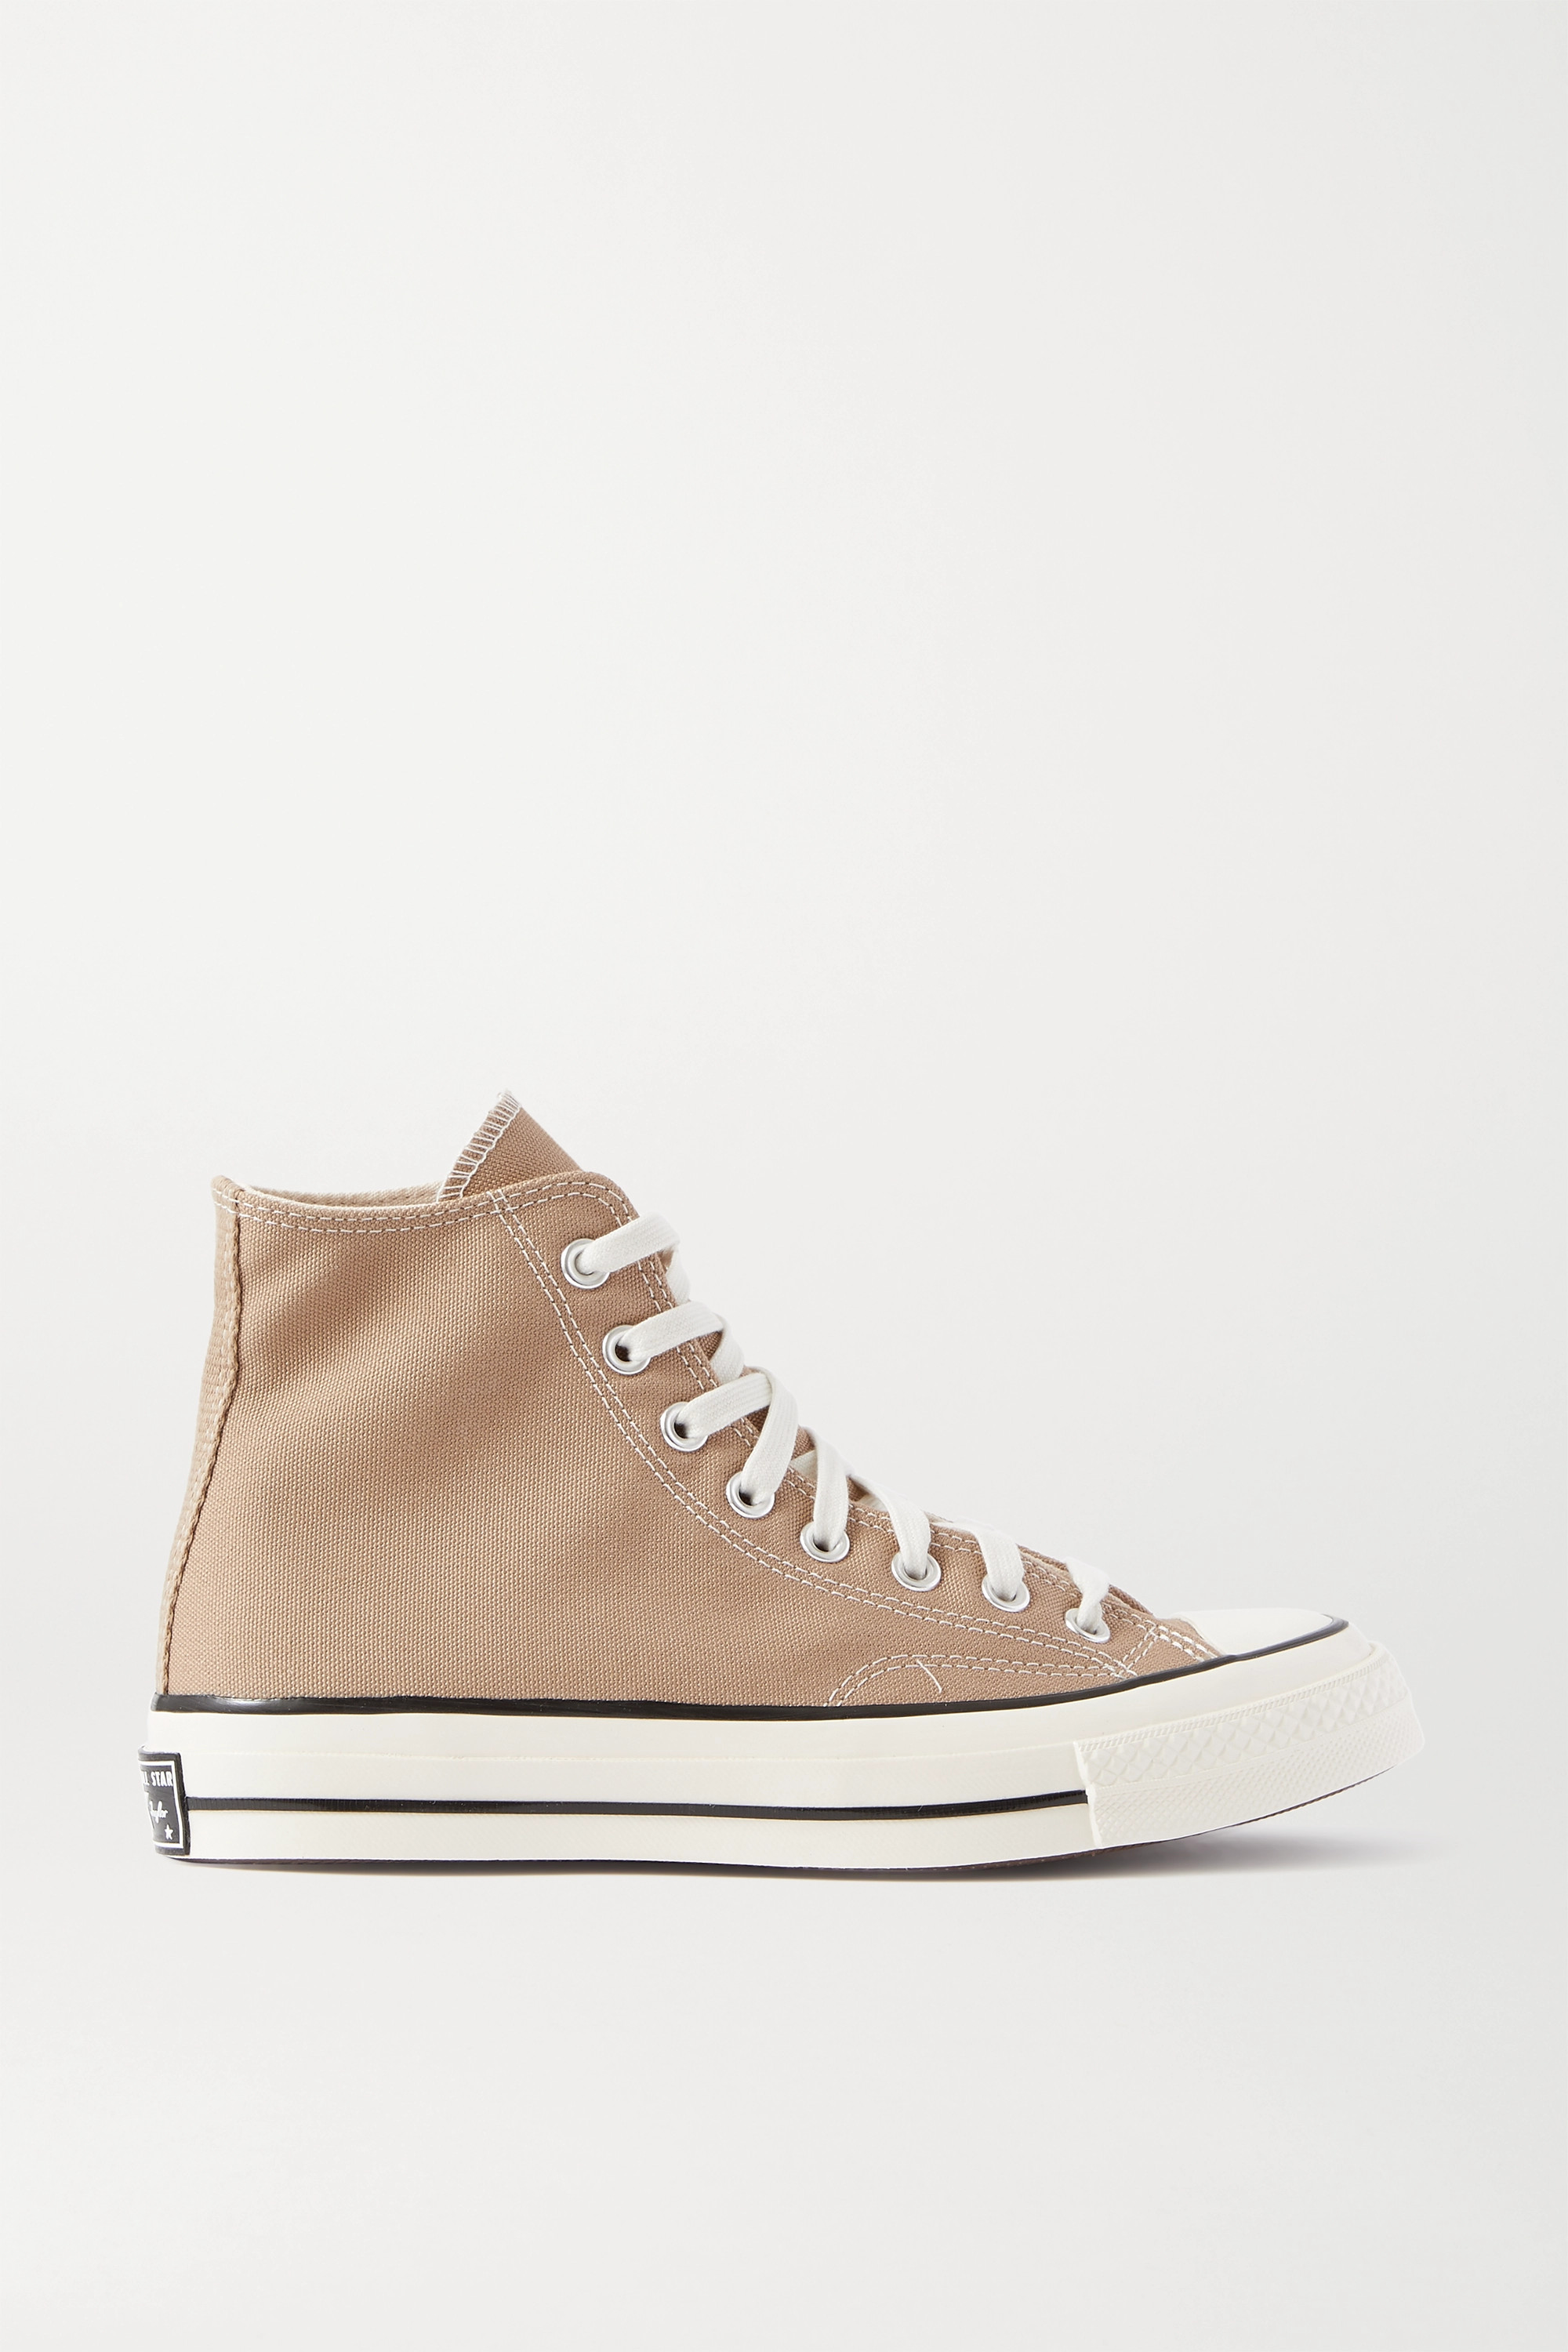 Beige Chuck Taylor All Star 70 Canvas High-top Sneakers | Converse